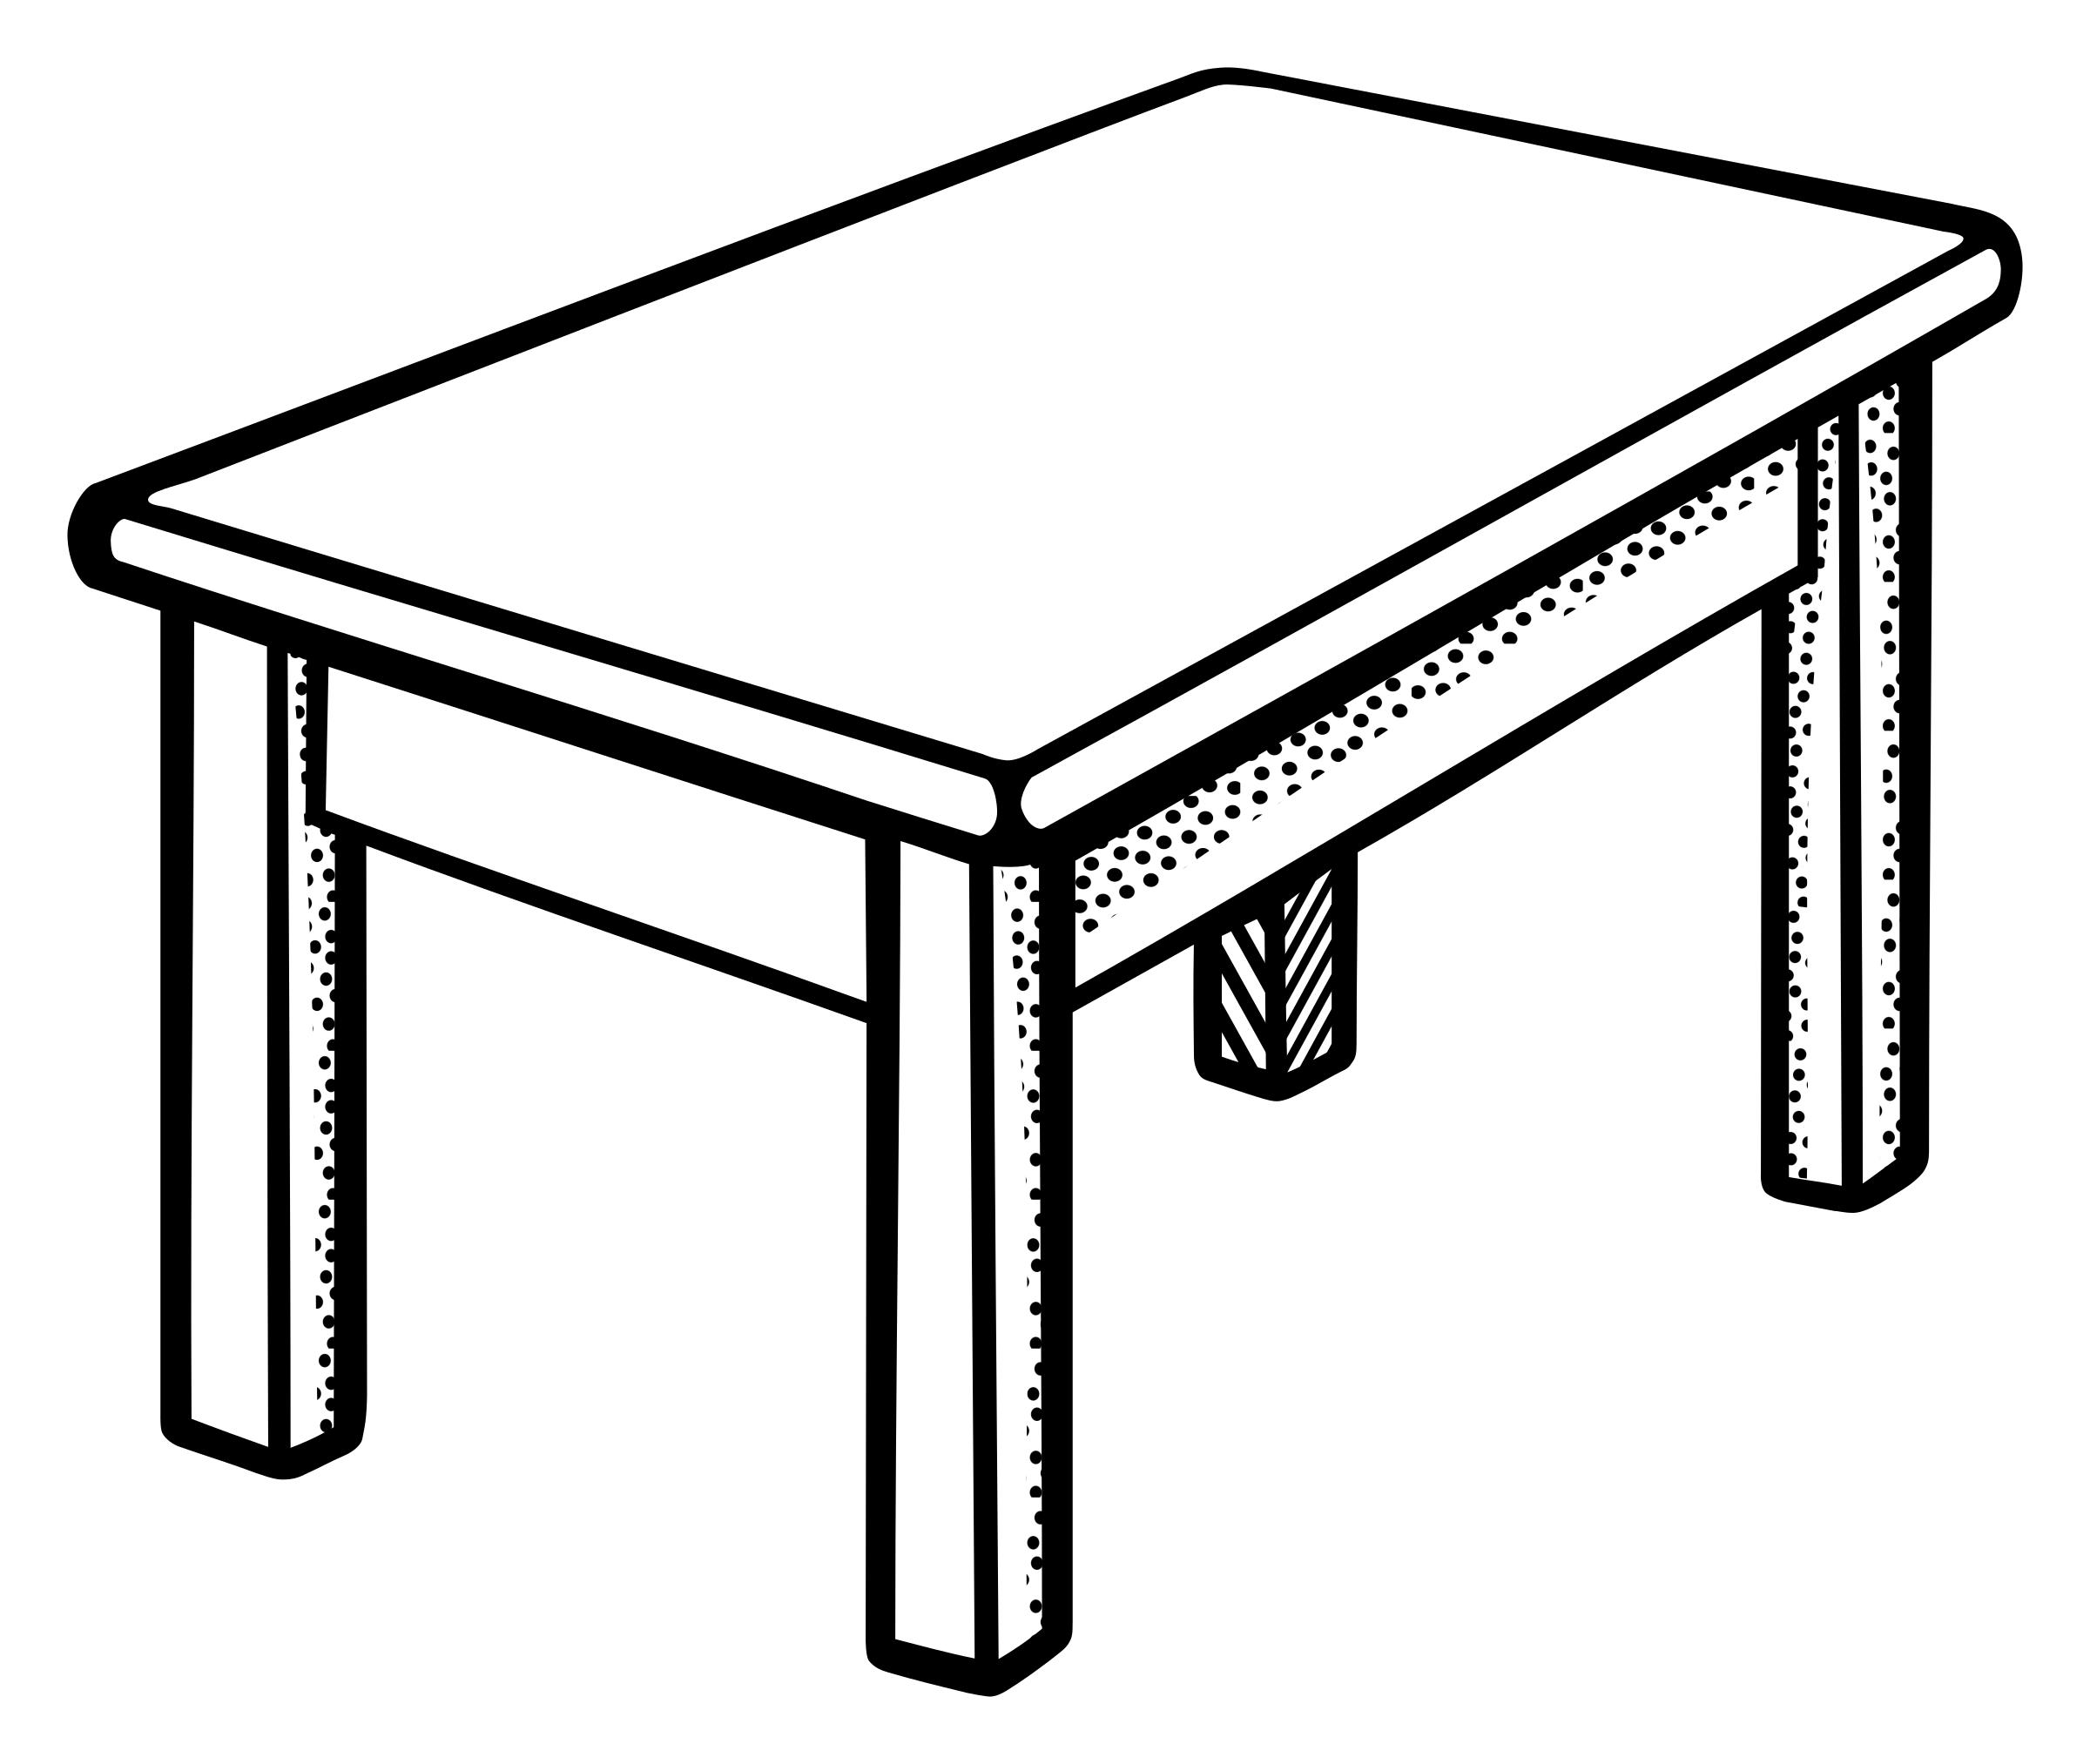 Dining free download best. Clipart table drawing